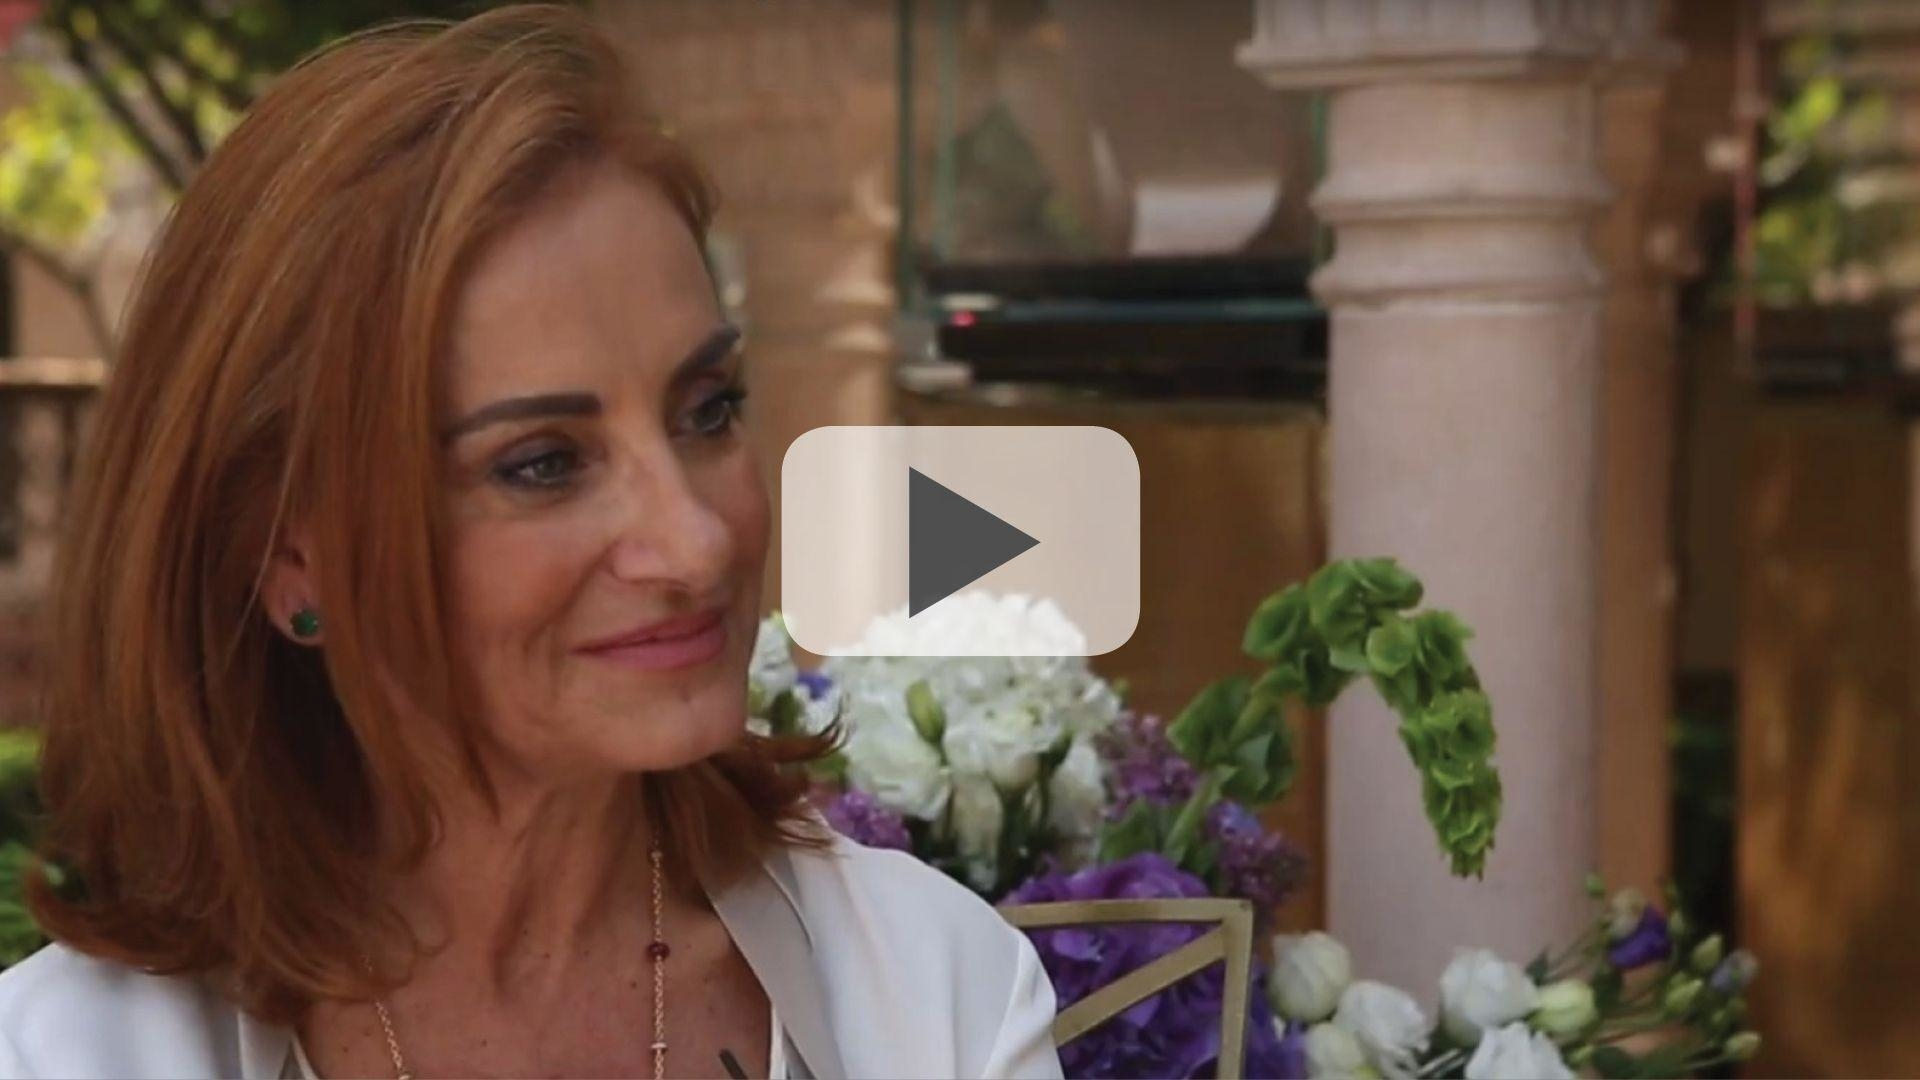 Watch Now: In Conversation With Lucia Silvestri, Jewellery Creative Director Of Bulgari